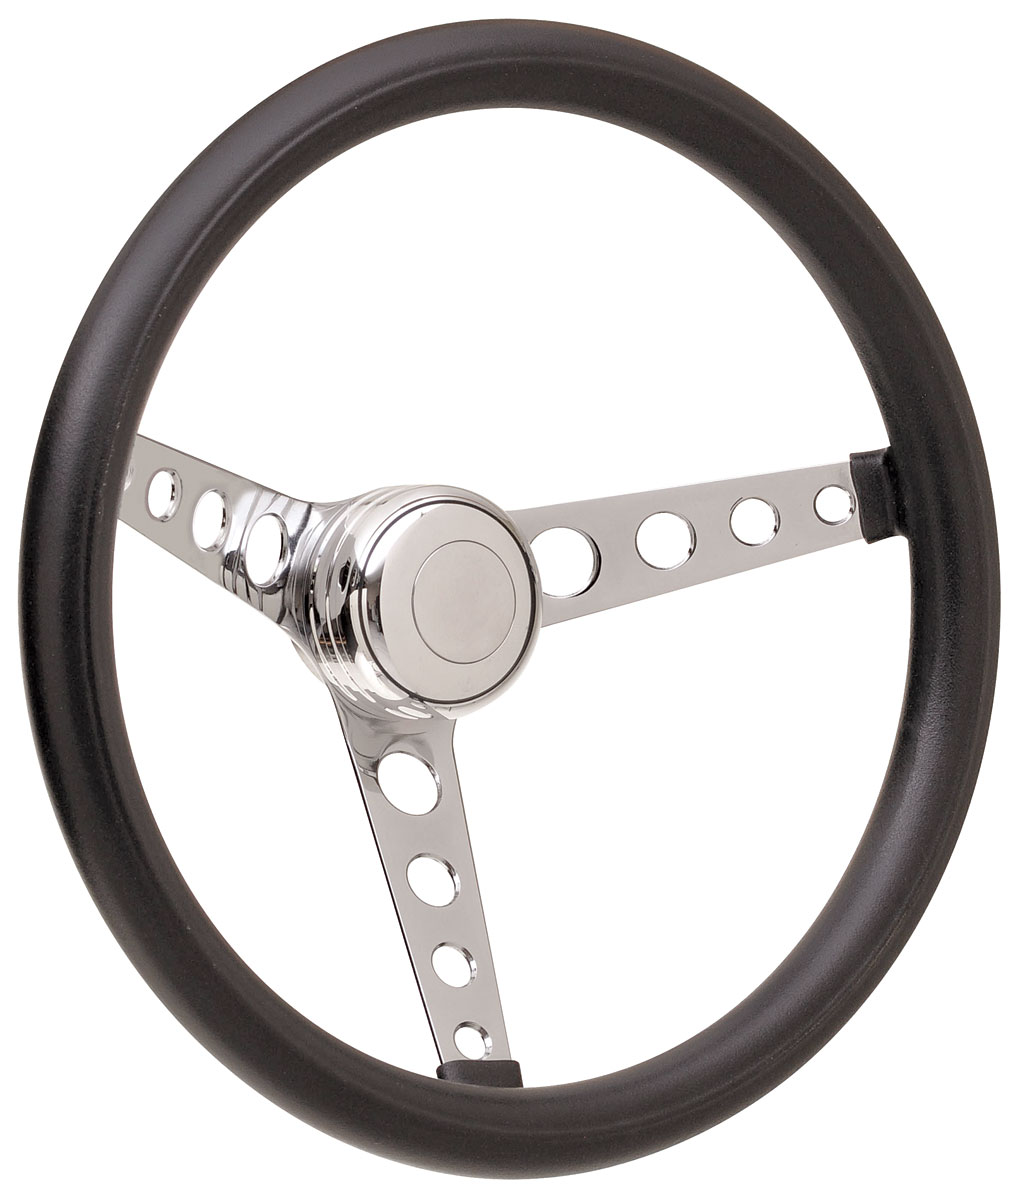 Photo of Steering Wheel Kits, Classic Foam Tall Cap - Polished with polished center